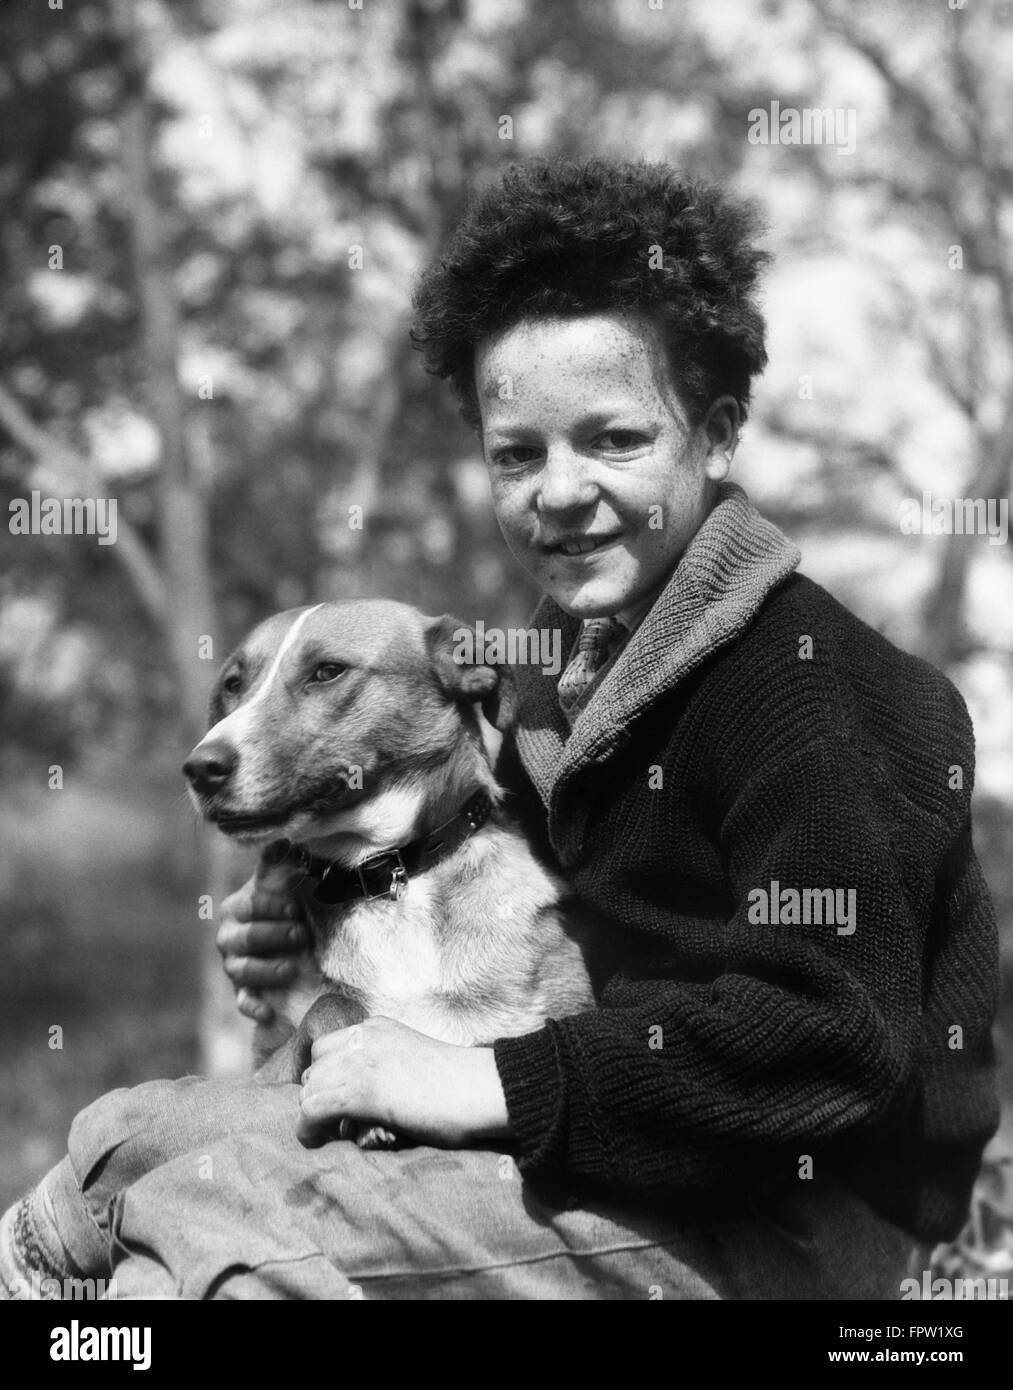 1920s 1930s SMILING BOY LOOKING AT CAMERA HOLDING DOG - Stock Image